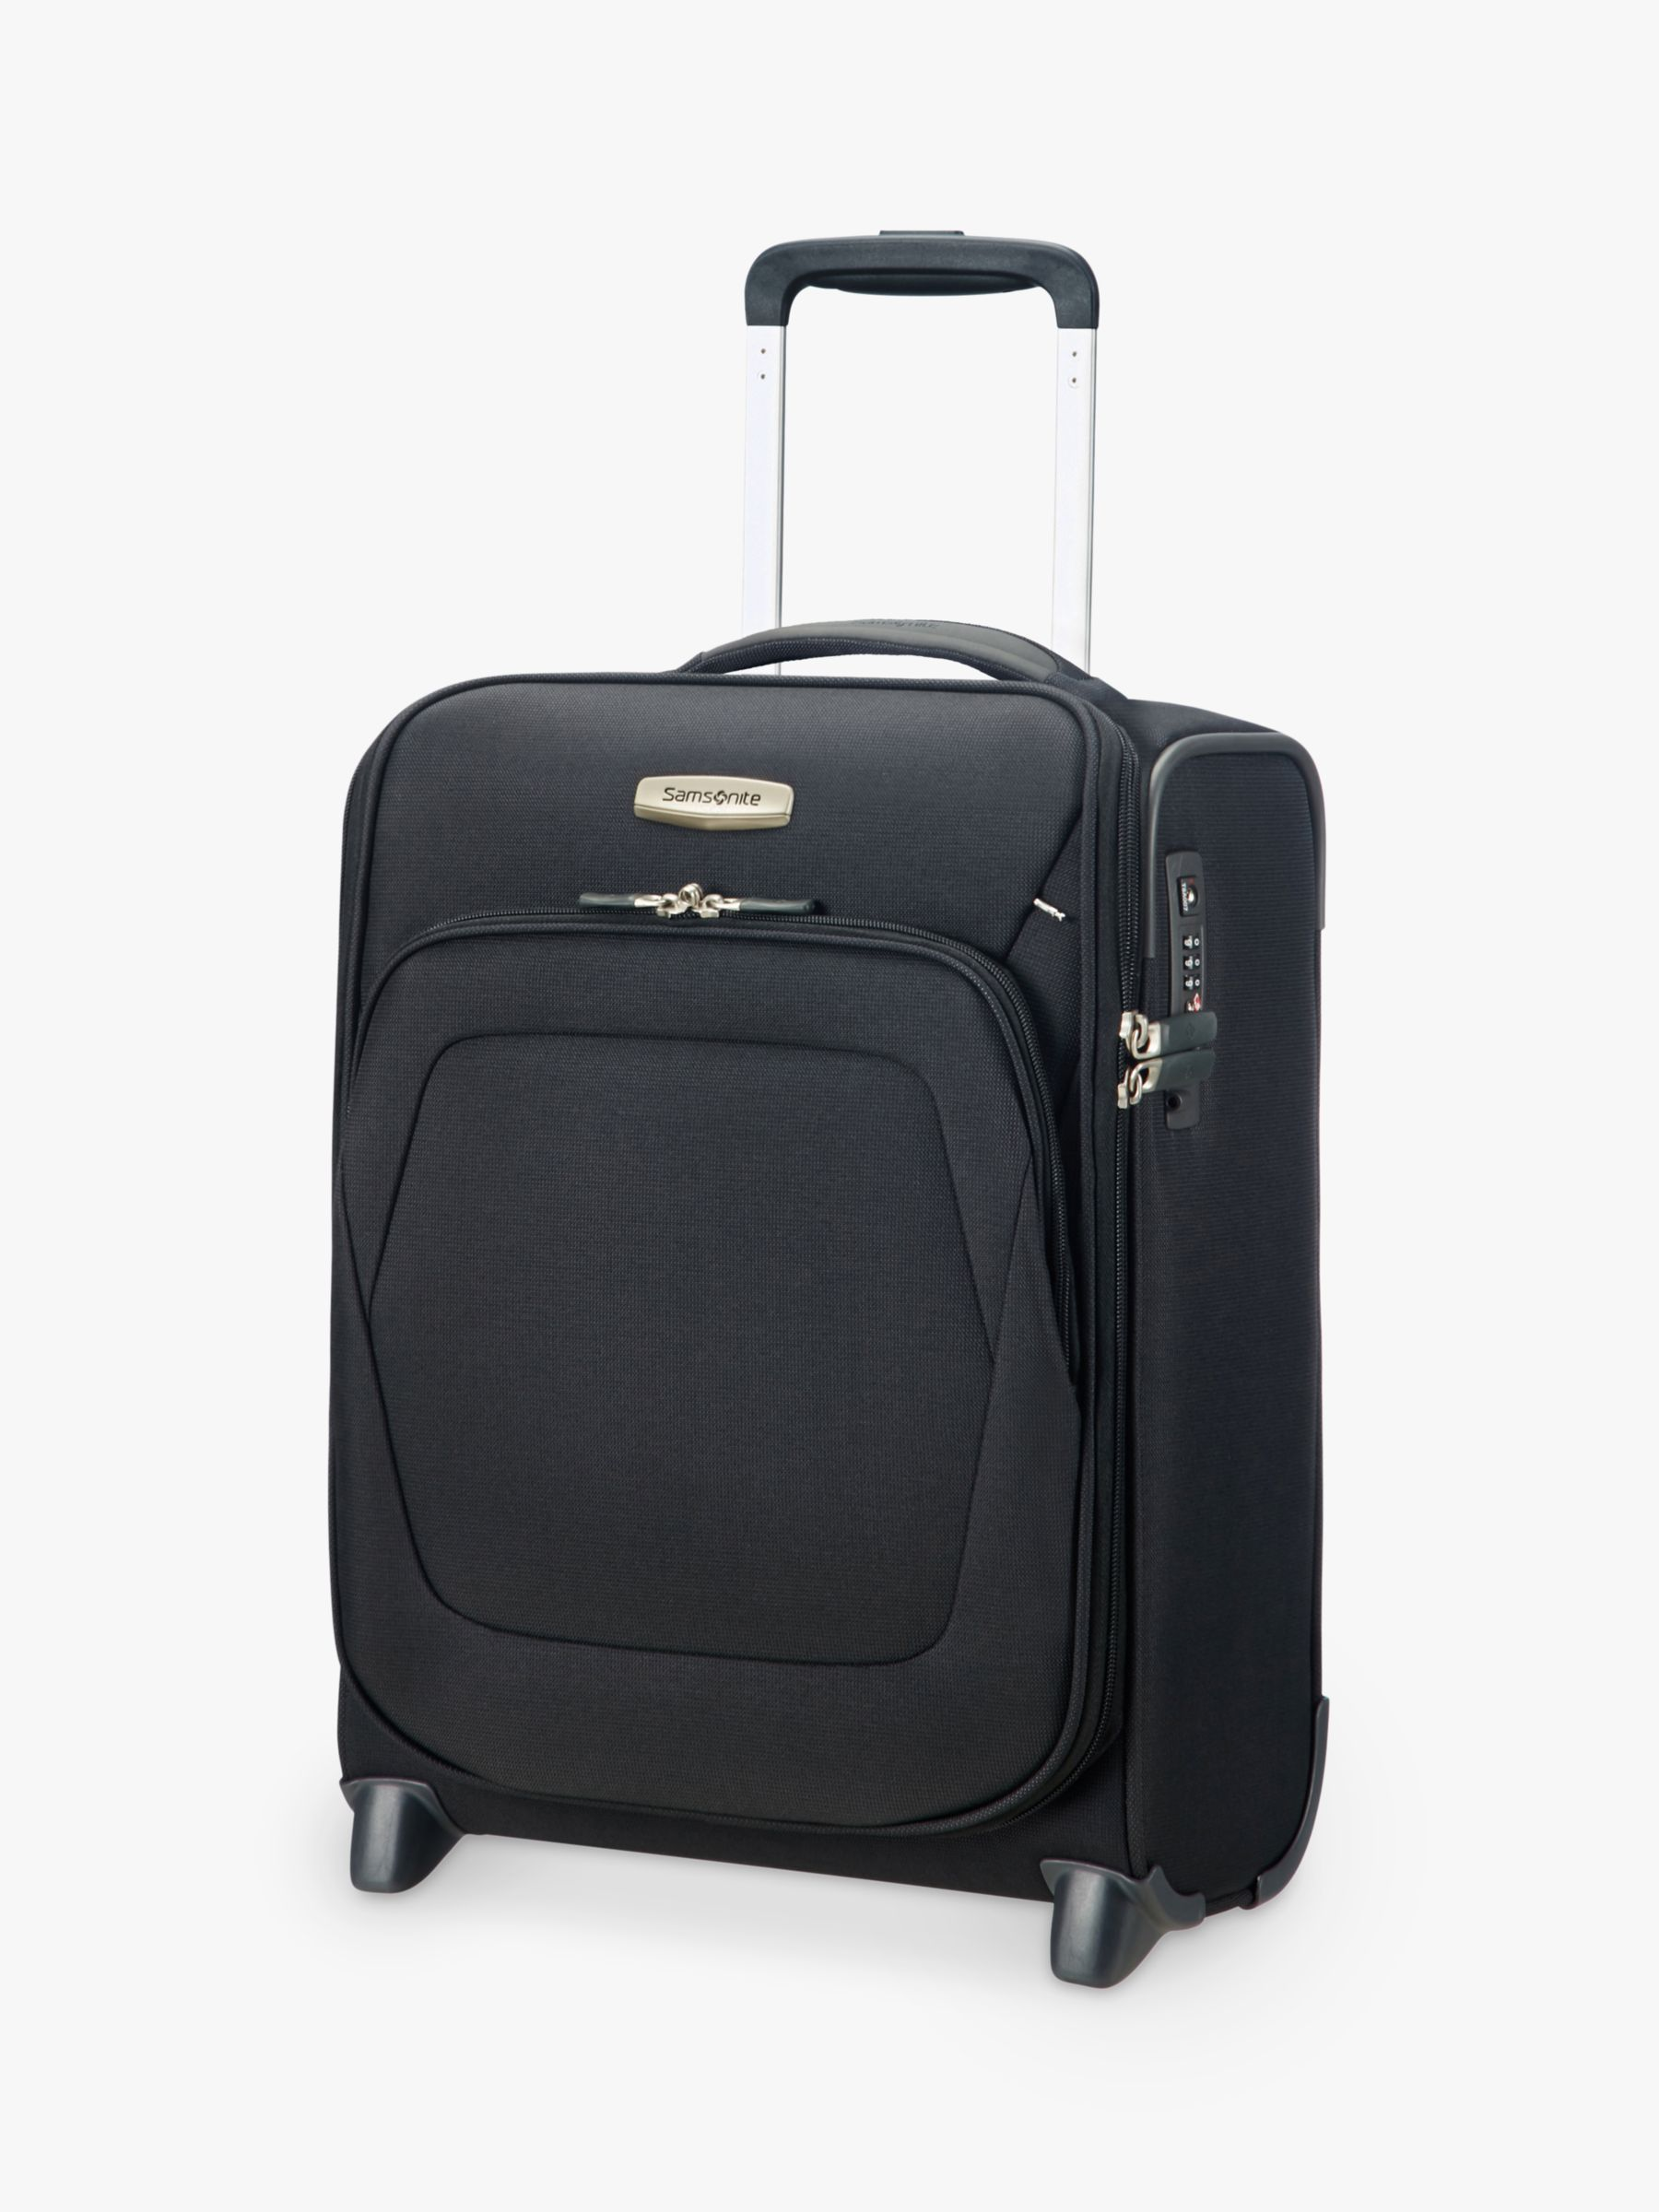 Samsonite Samsonite Spark SNG USB Port 45cm 2-Wheel Cabin Case